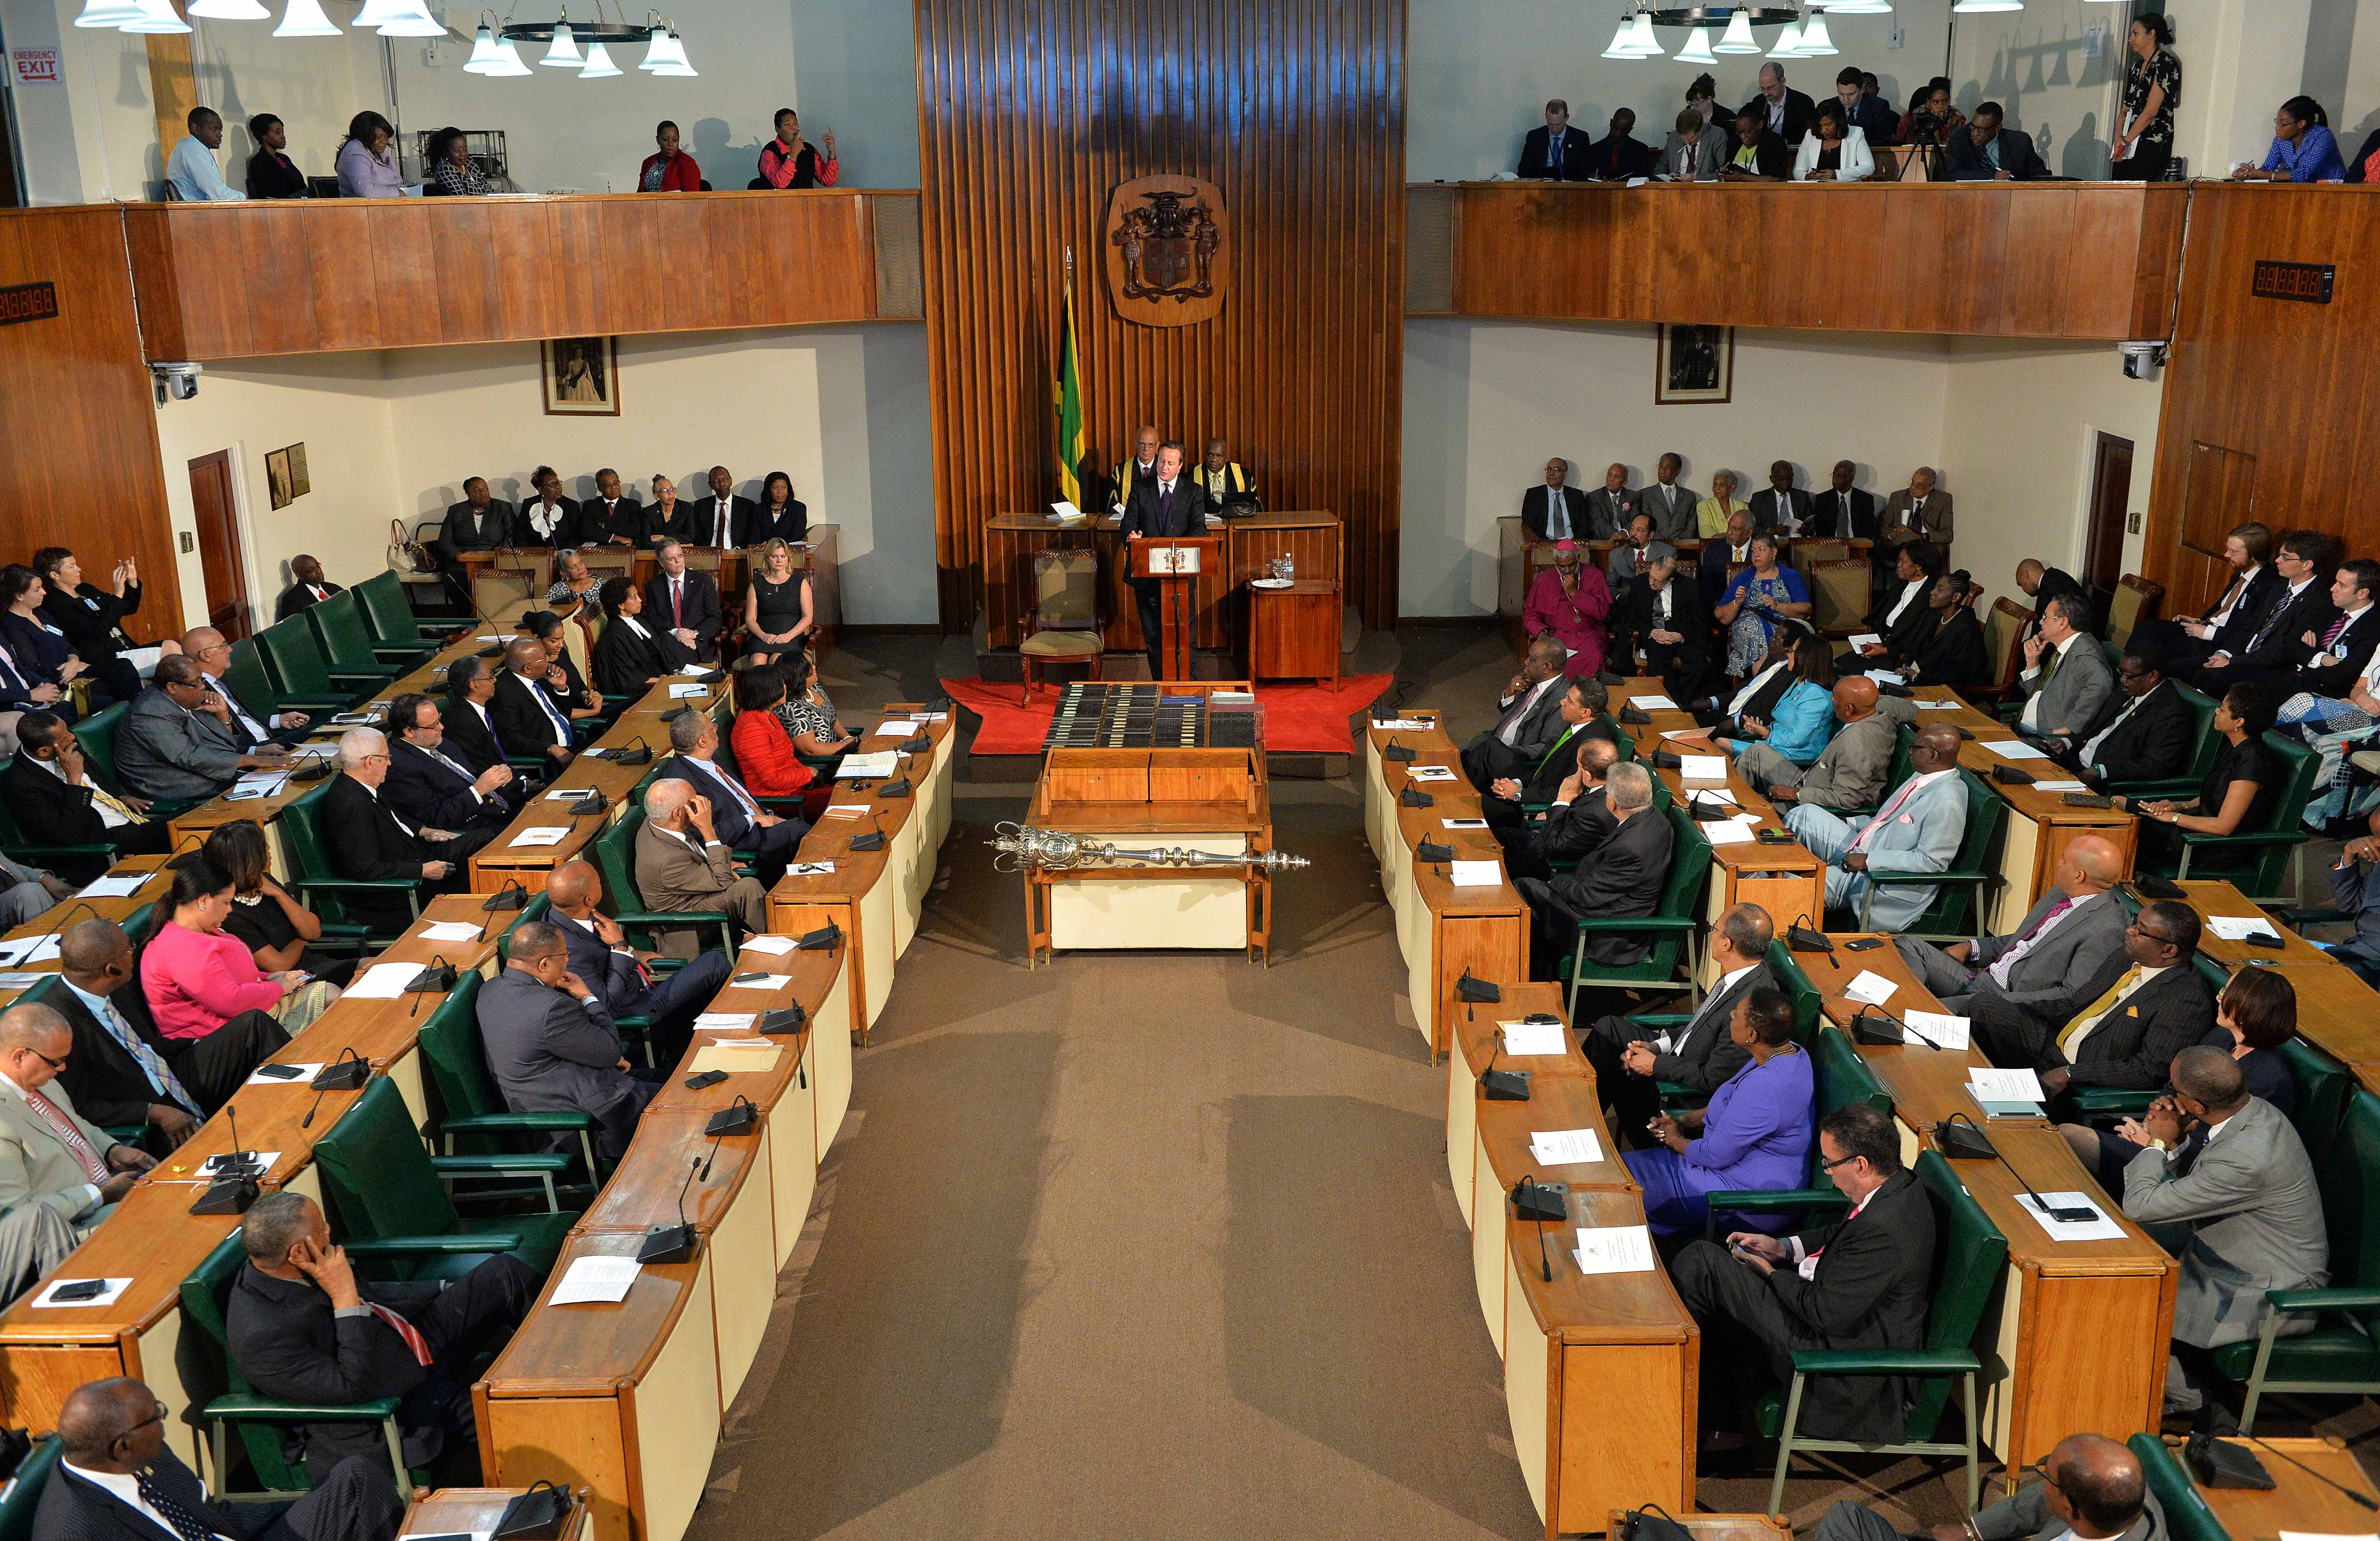 Parliament of Jamaica (photo credit: Number 10/flickr)